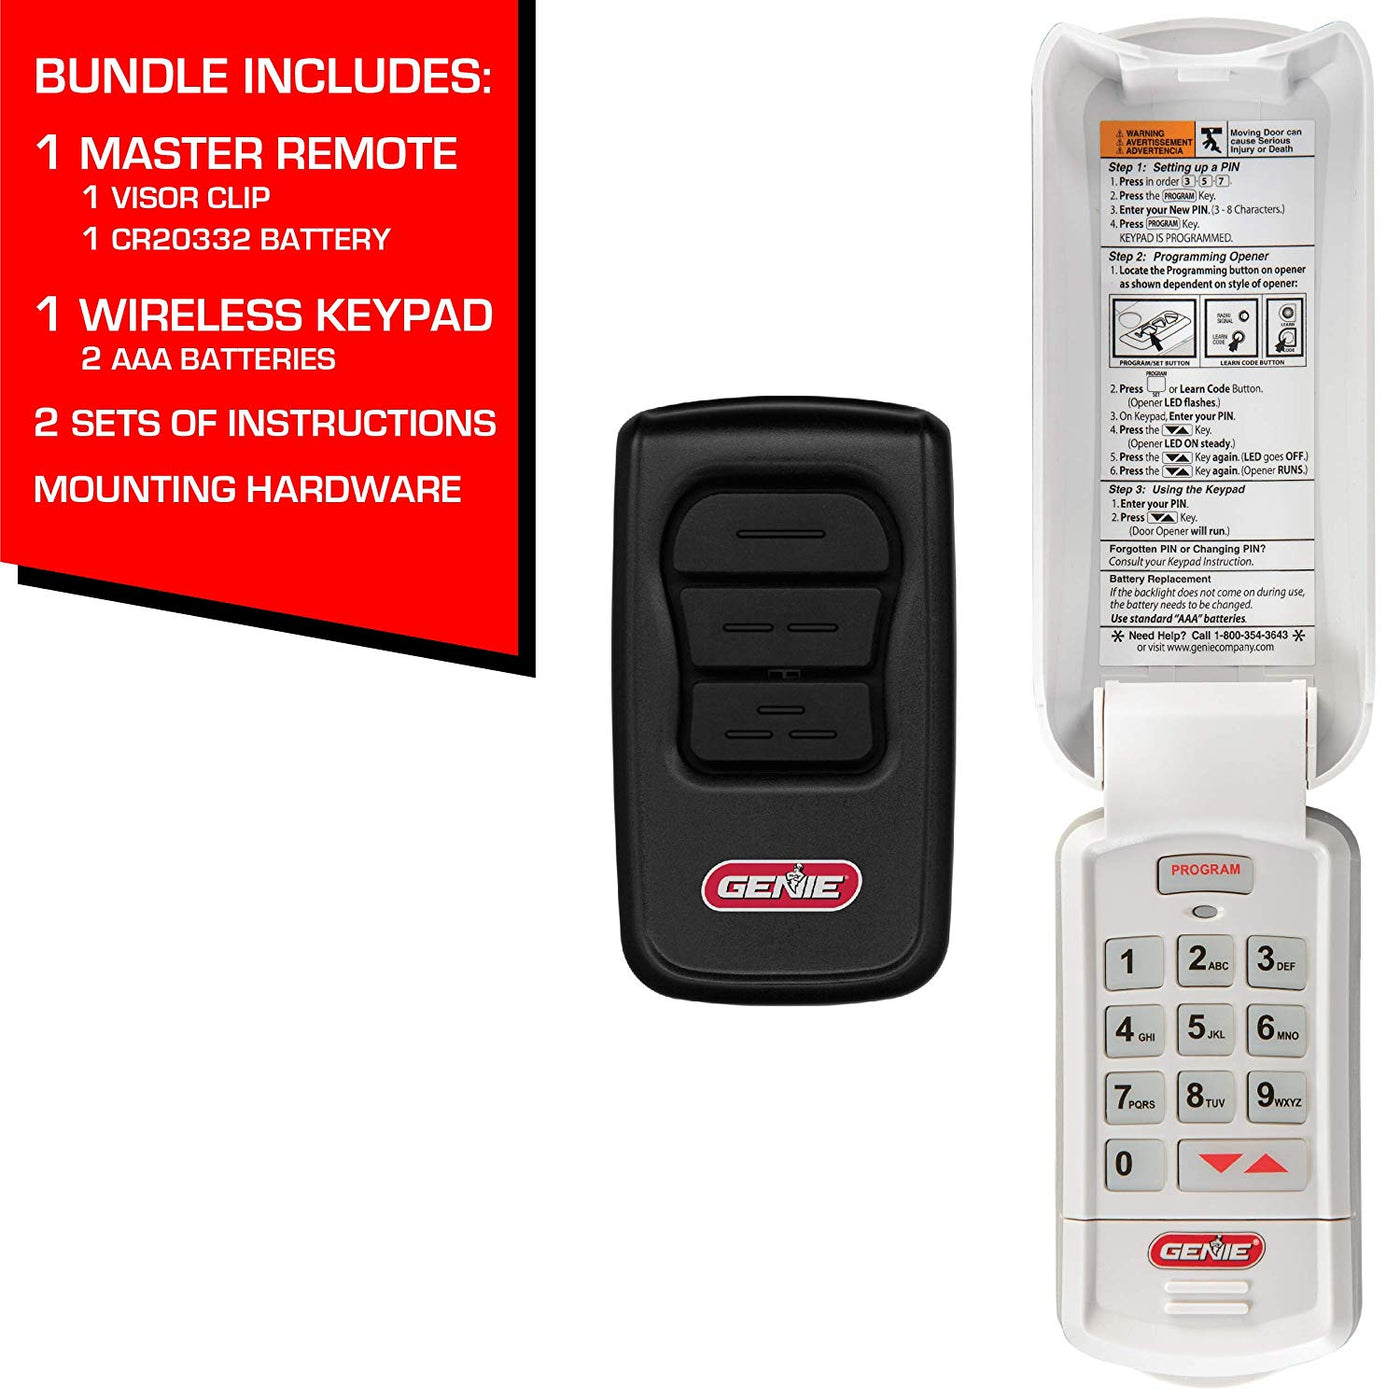 Genie Garage Door Opener Keyless Entry + Master Remote